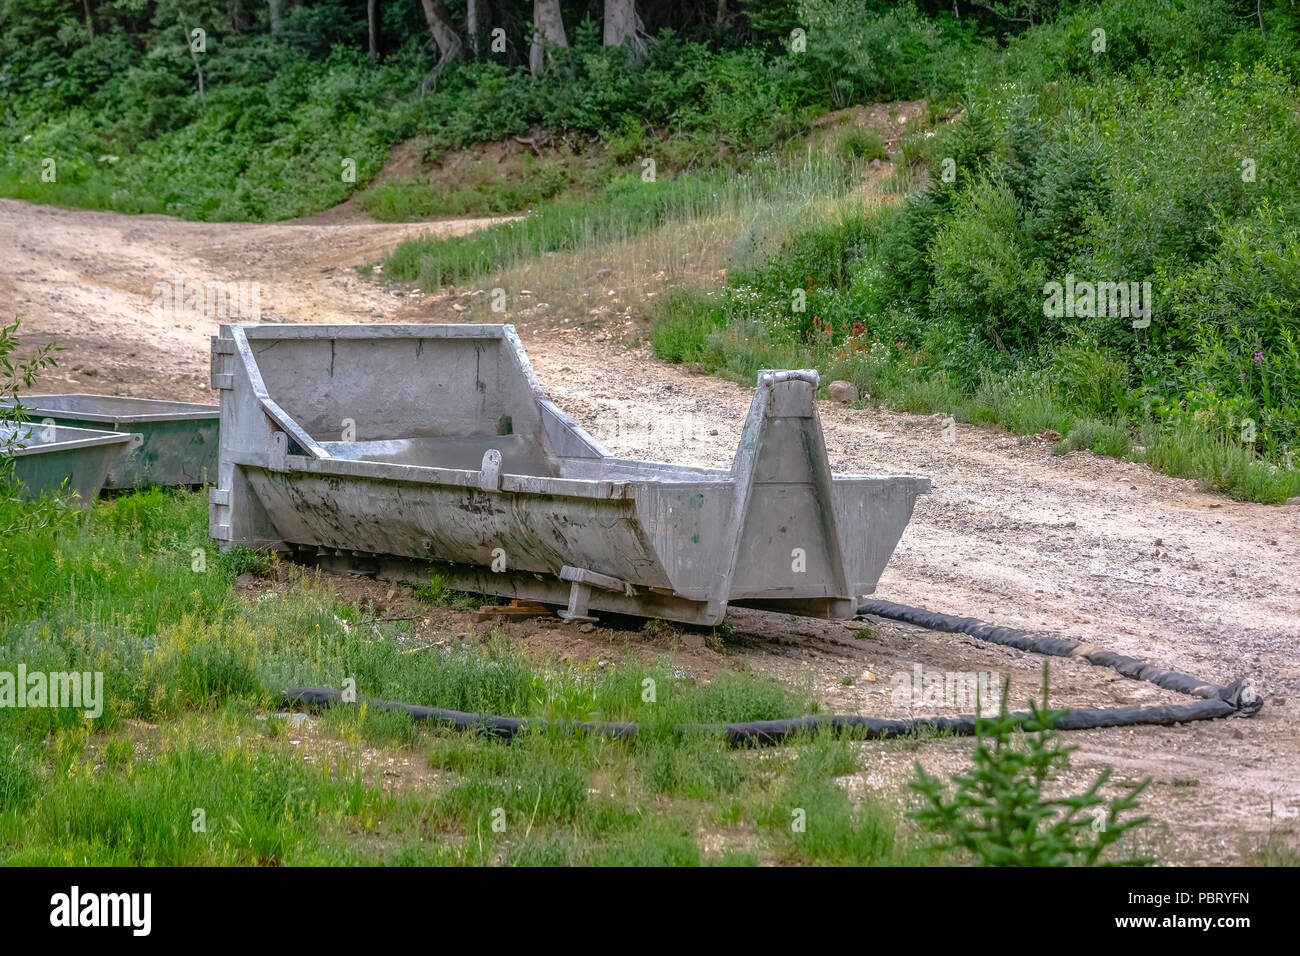 Dumpster on the edge of trail - Stock Image